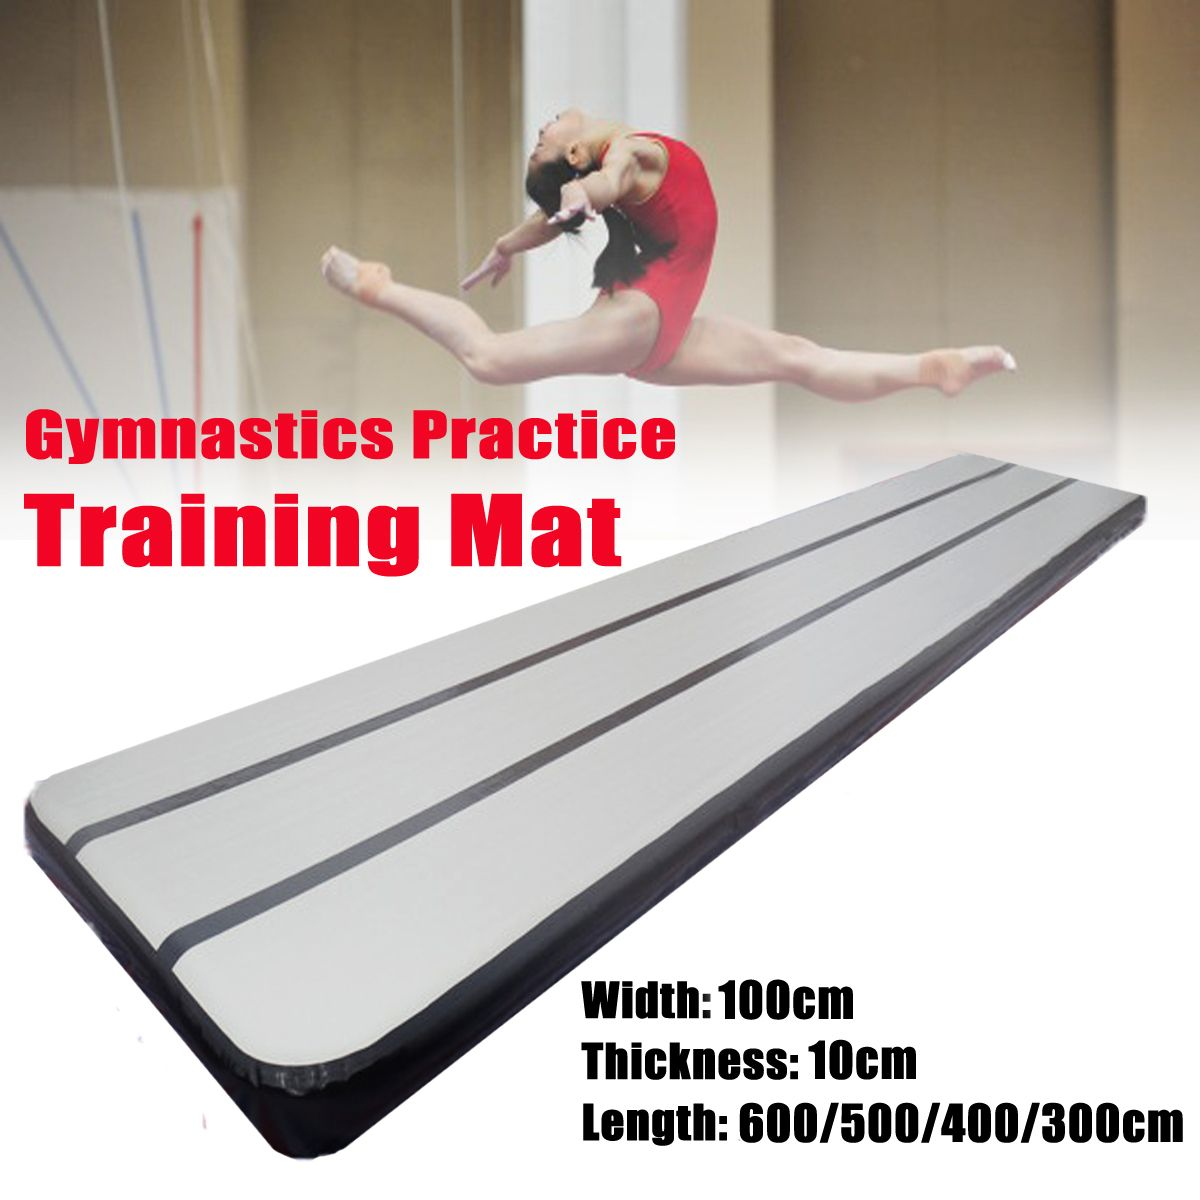 600/500/400x90x10cm Gymnastics Practice Training Mat Pad Inflatable GYM Air Track Mat Airtrack